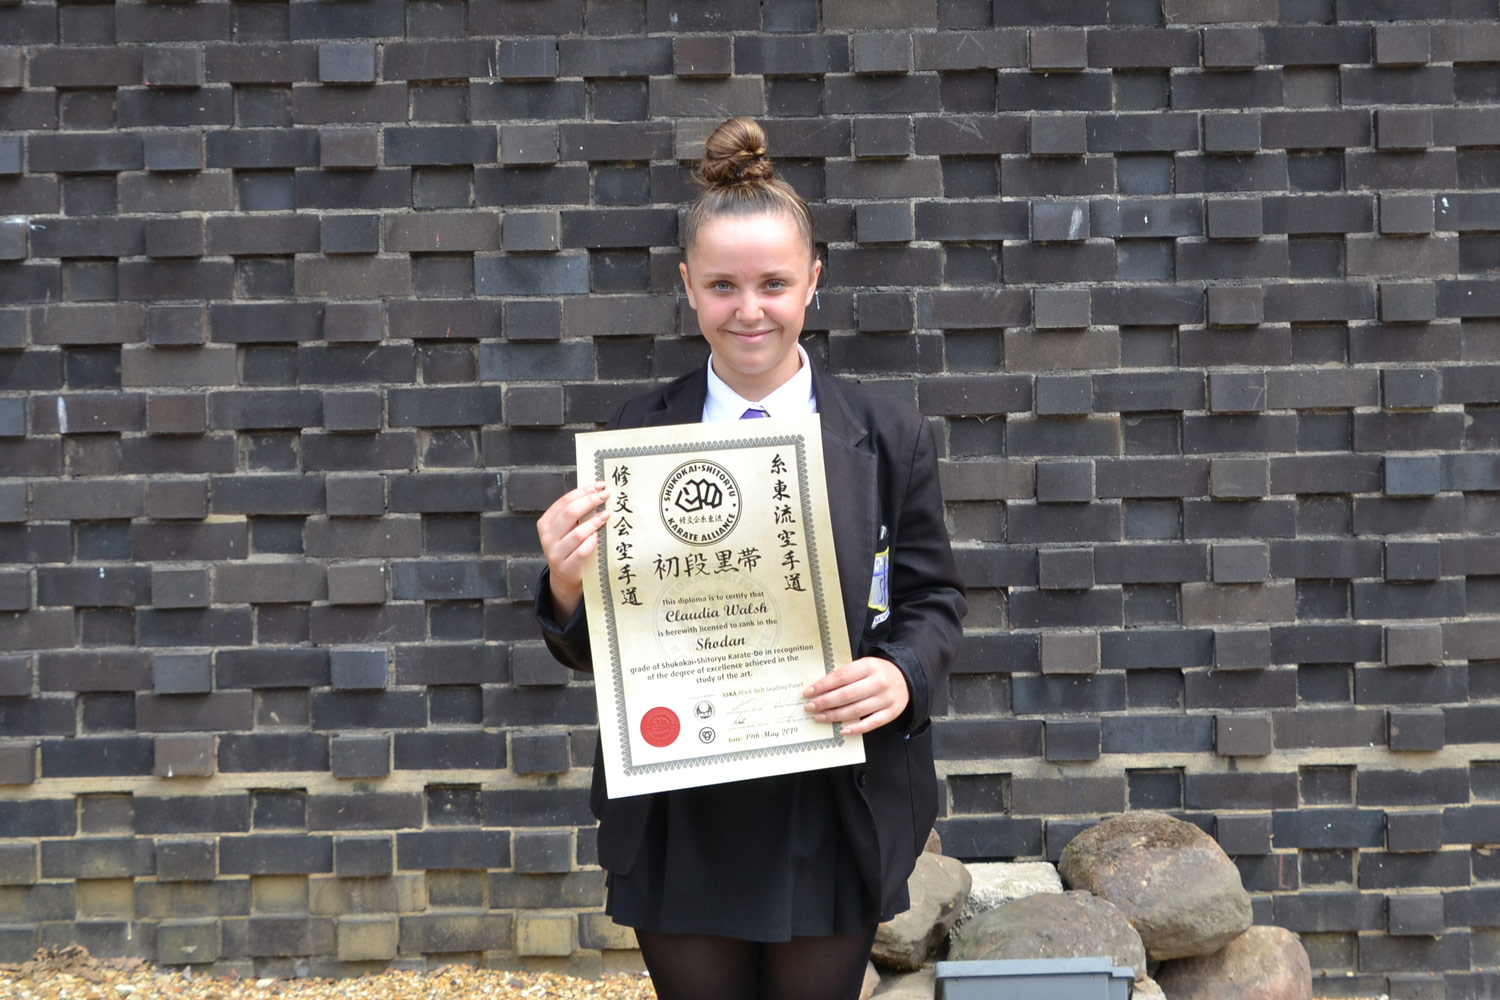 Well done Claudia – a fantastic achievement!